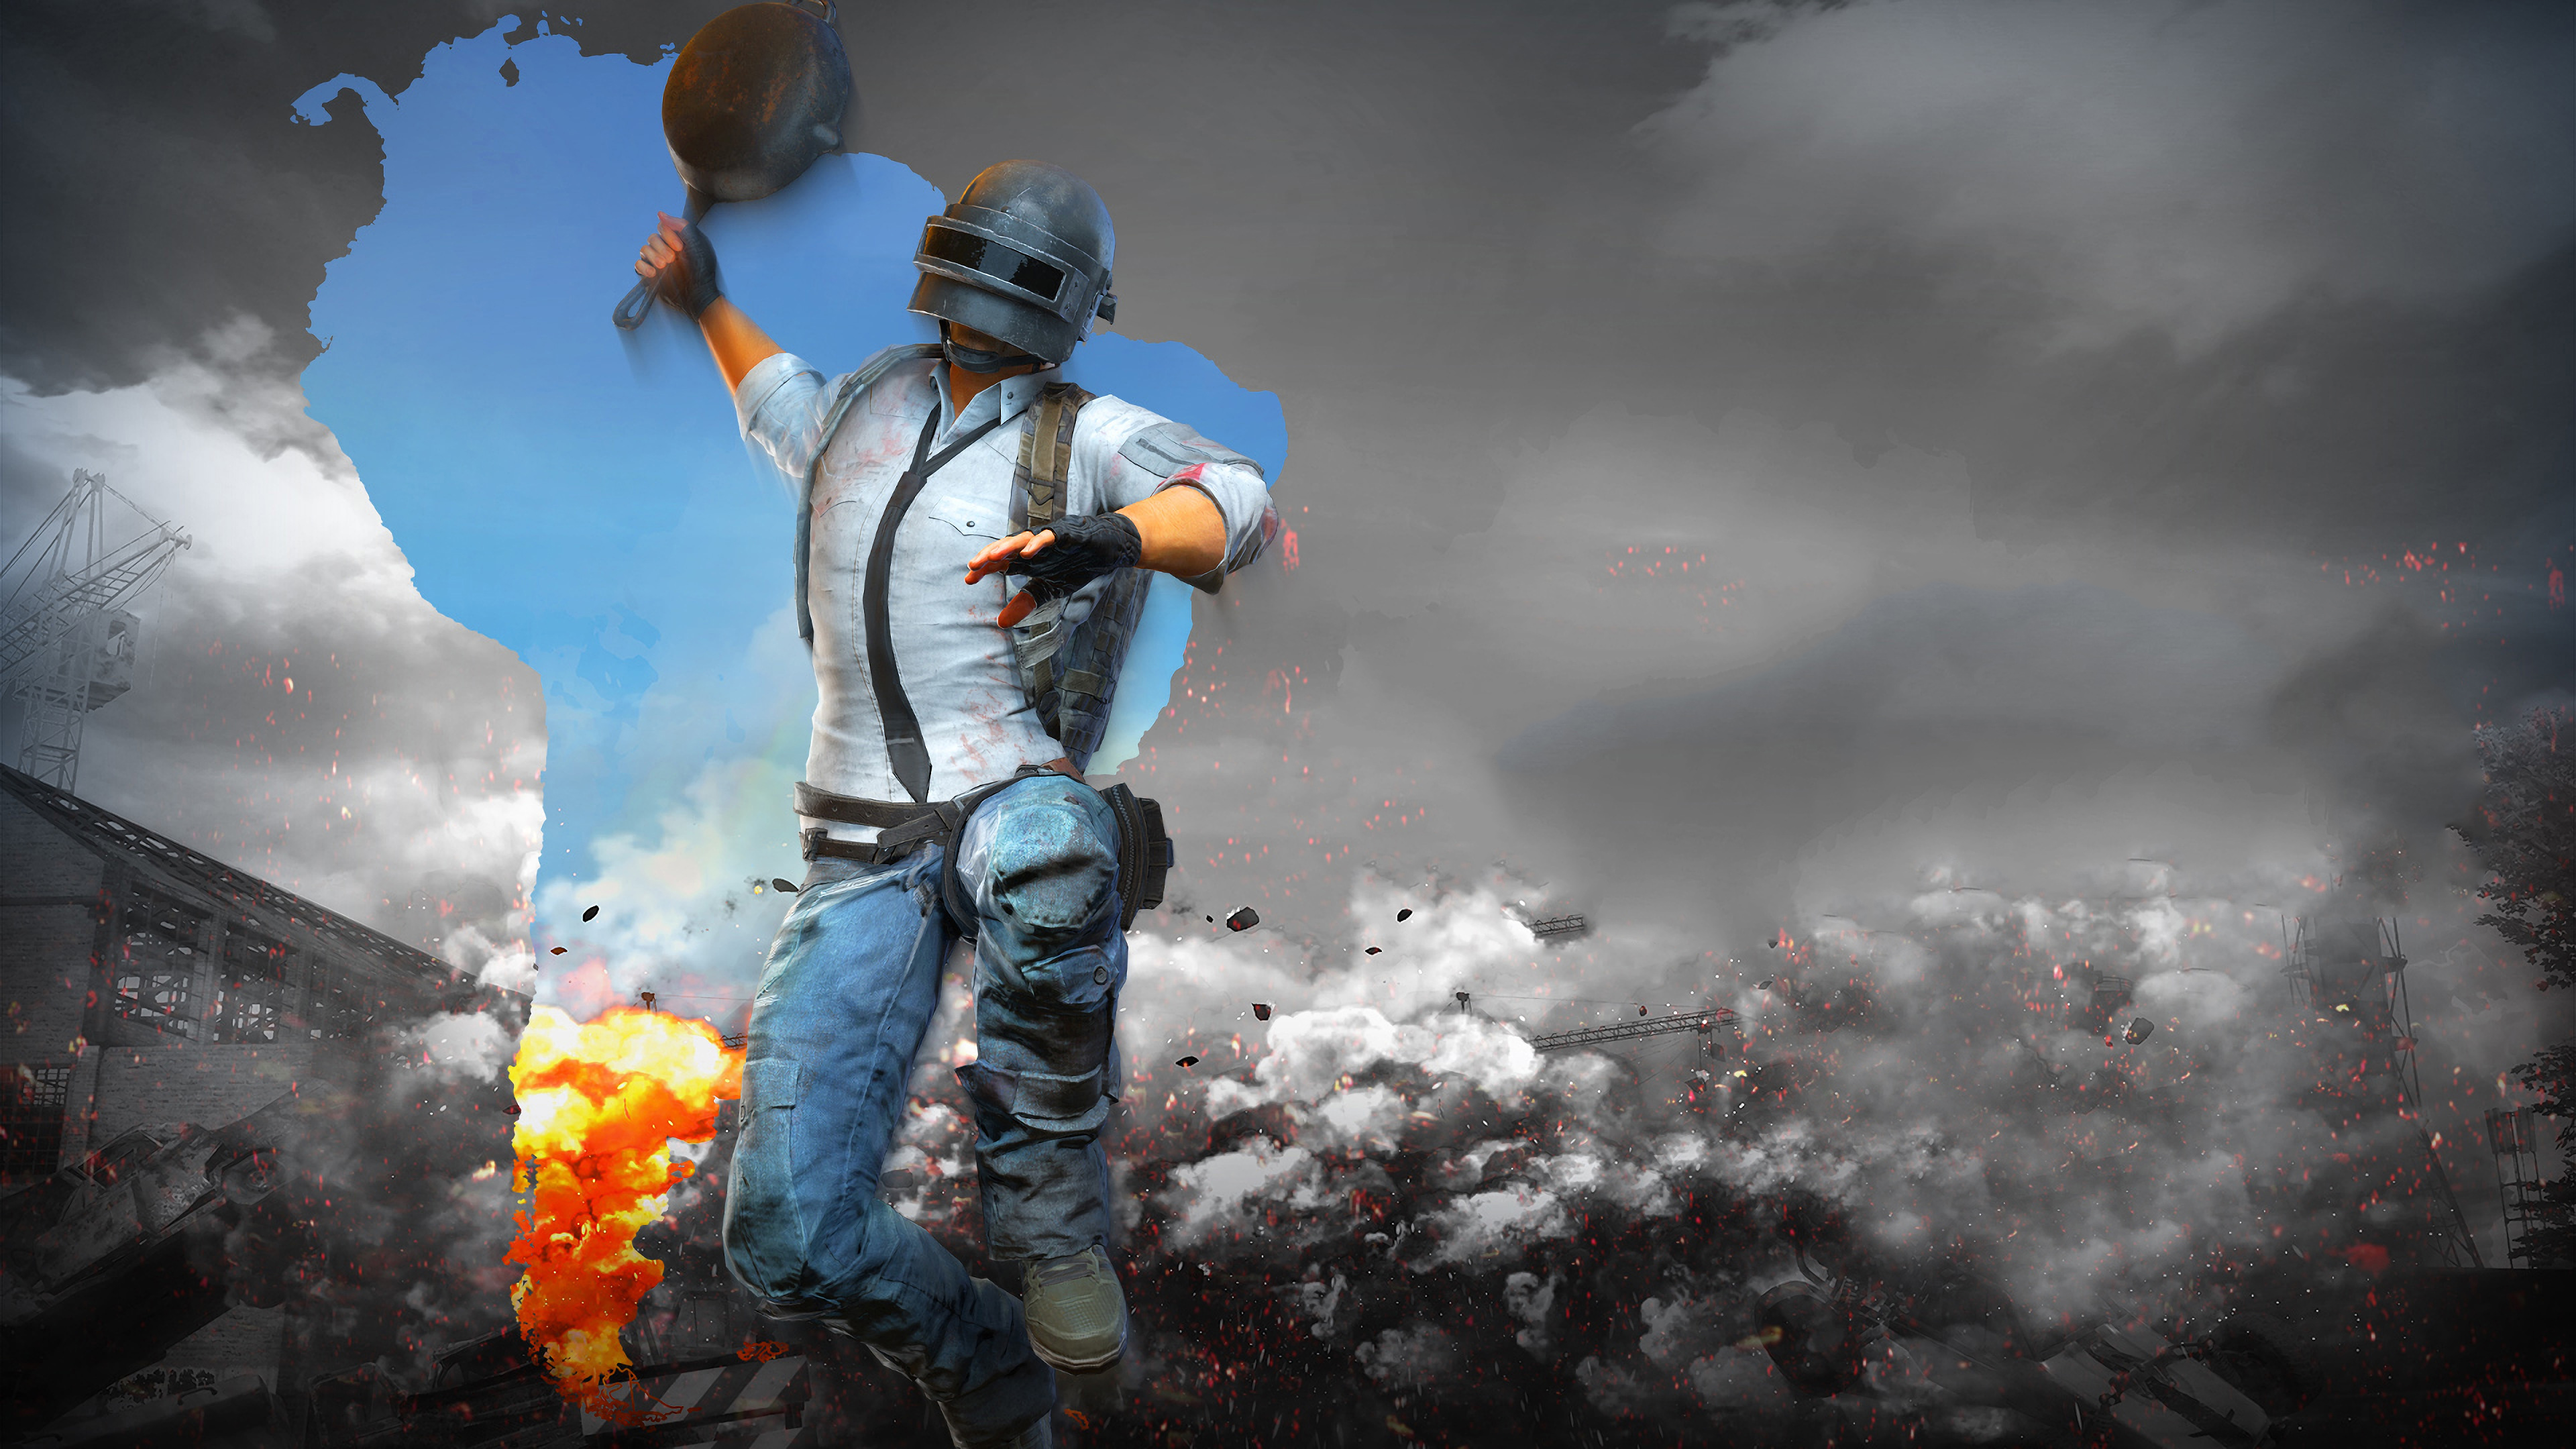 1920x1080 Pubg Artwork 4k Laptop Full Hd 1080p Hd 4k: 1920x1080 PUBG Helmet Man With Pan 4k Laptop Full HD 1080P